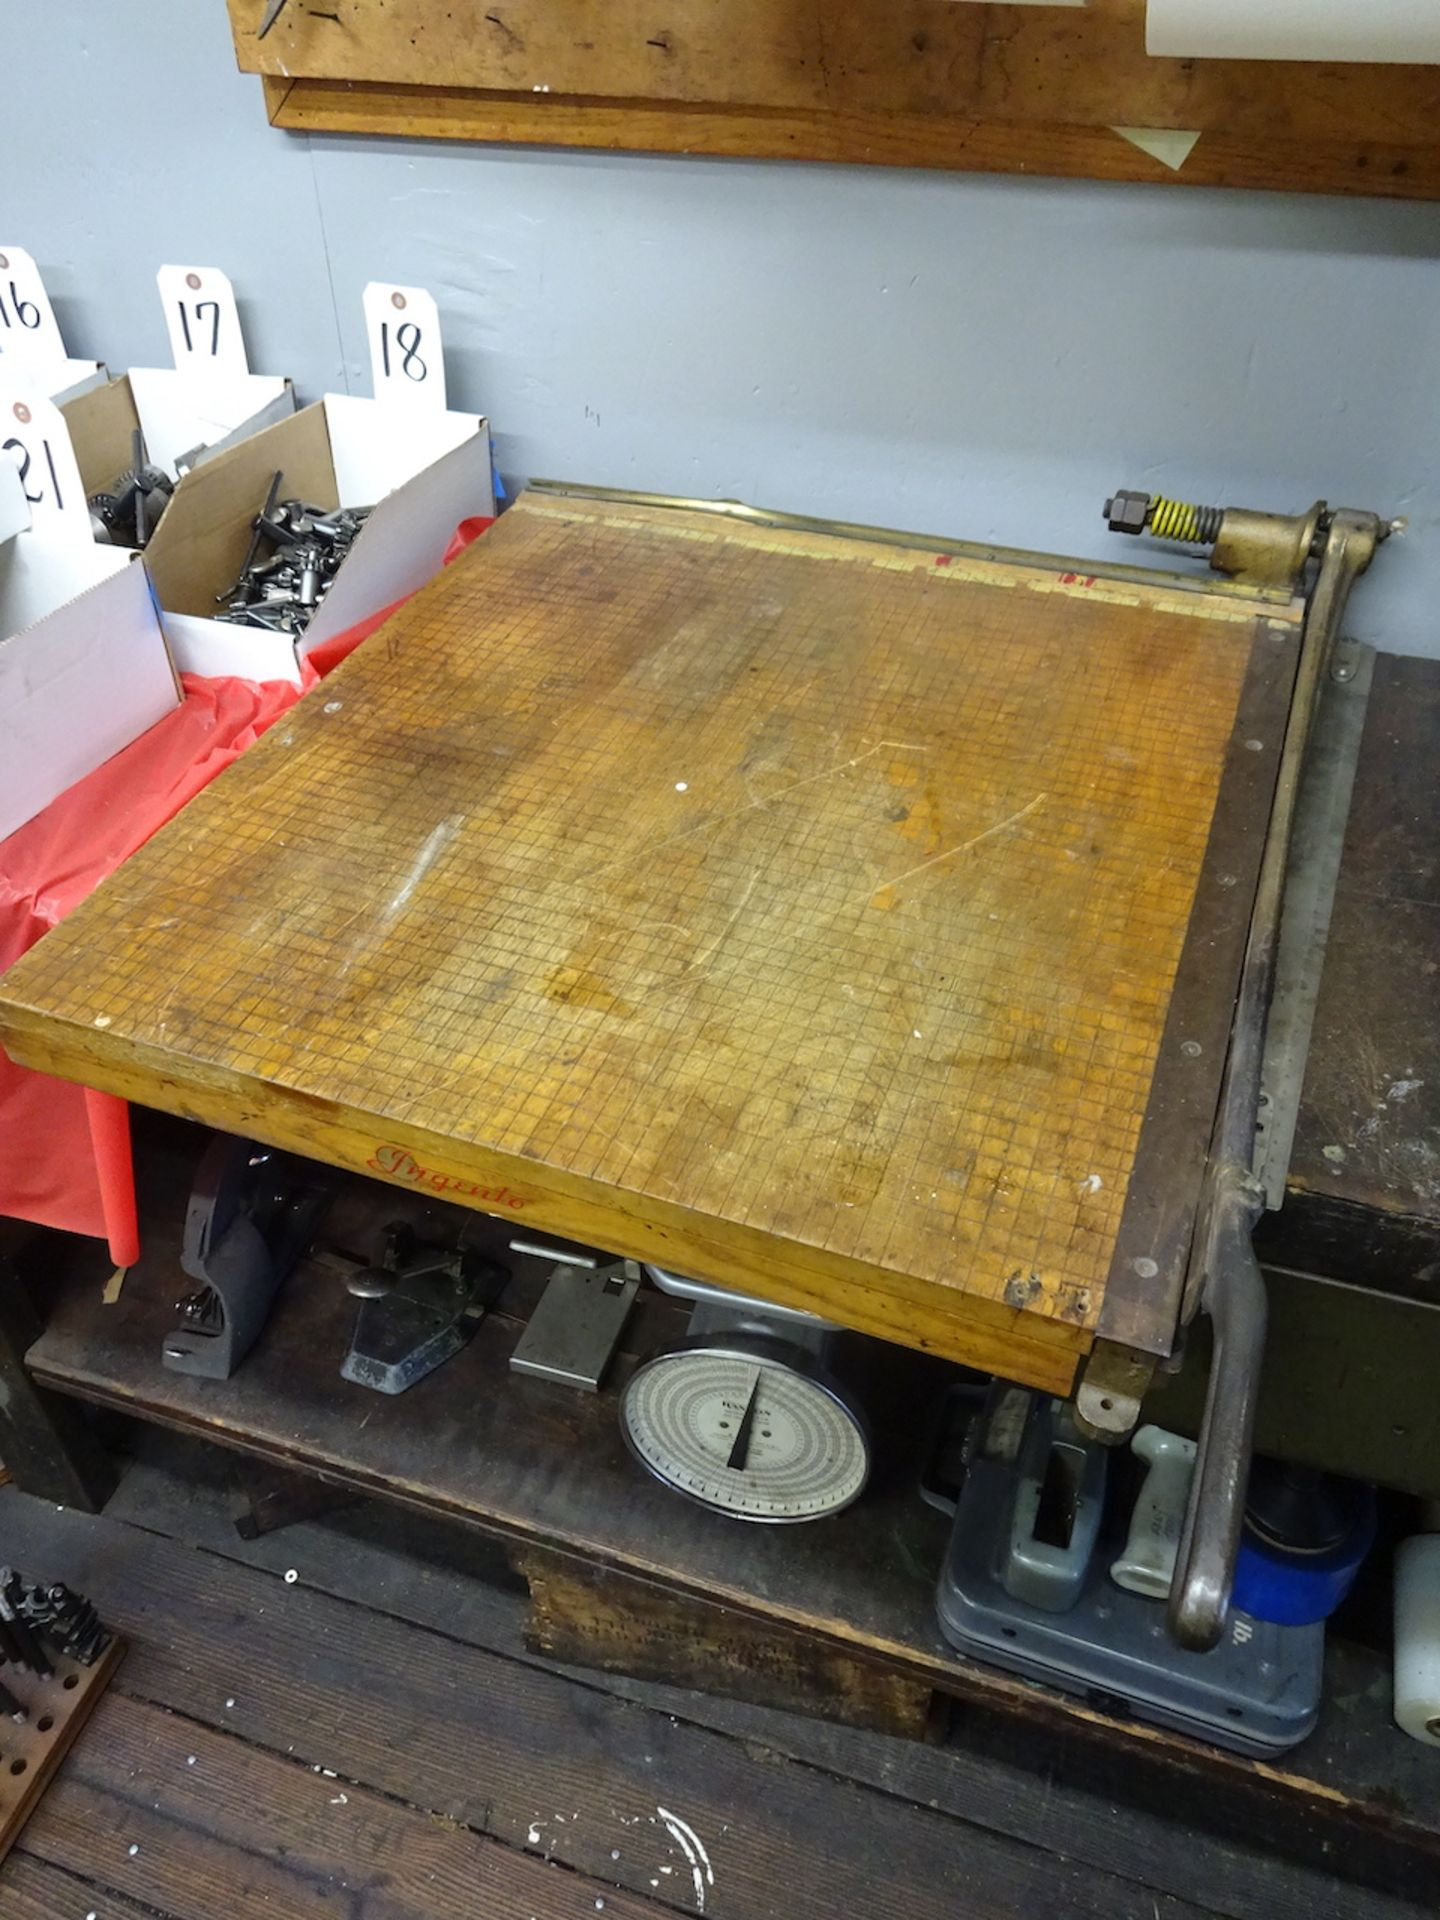 Lot 220 - LOT: Fairbanks Morse Scale, Ingento No. 6 Paper Cutter, Roll Dispenser